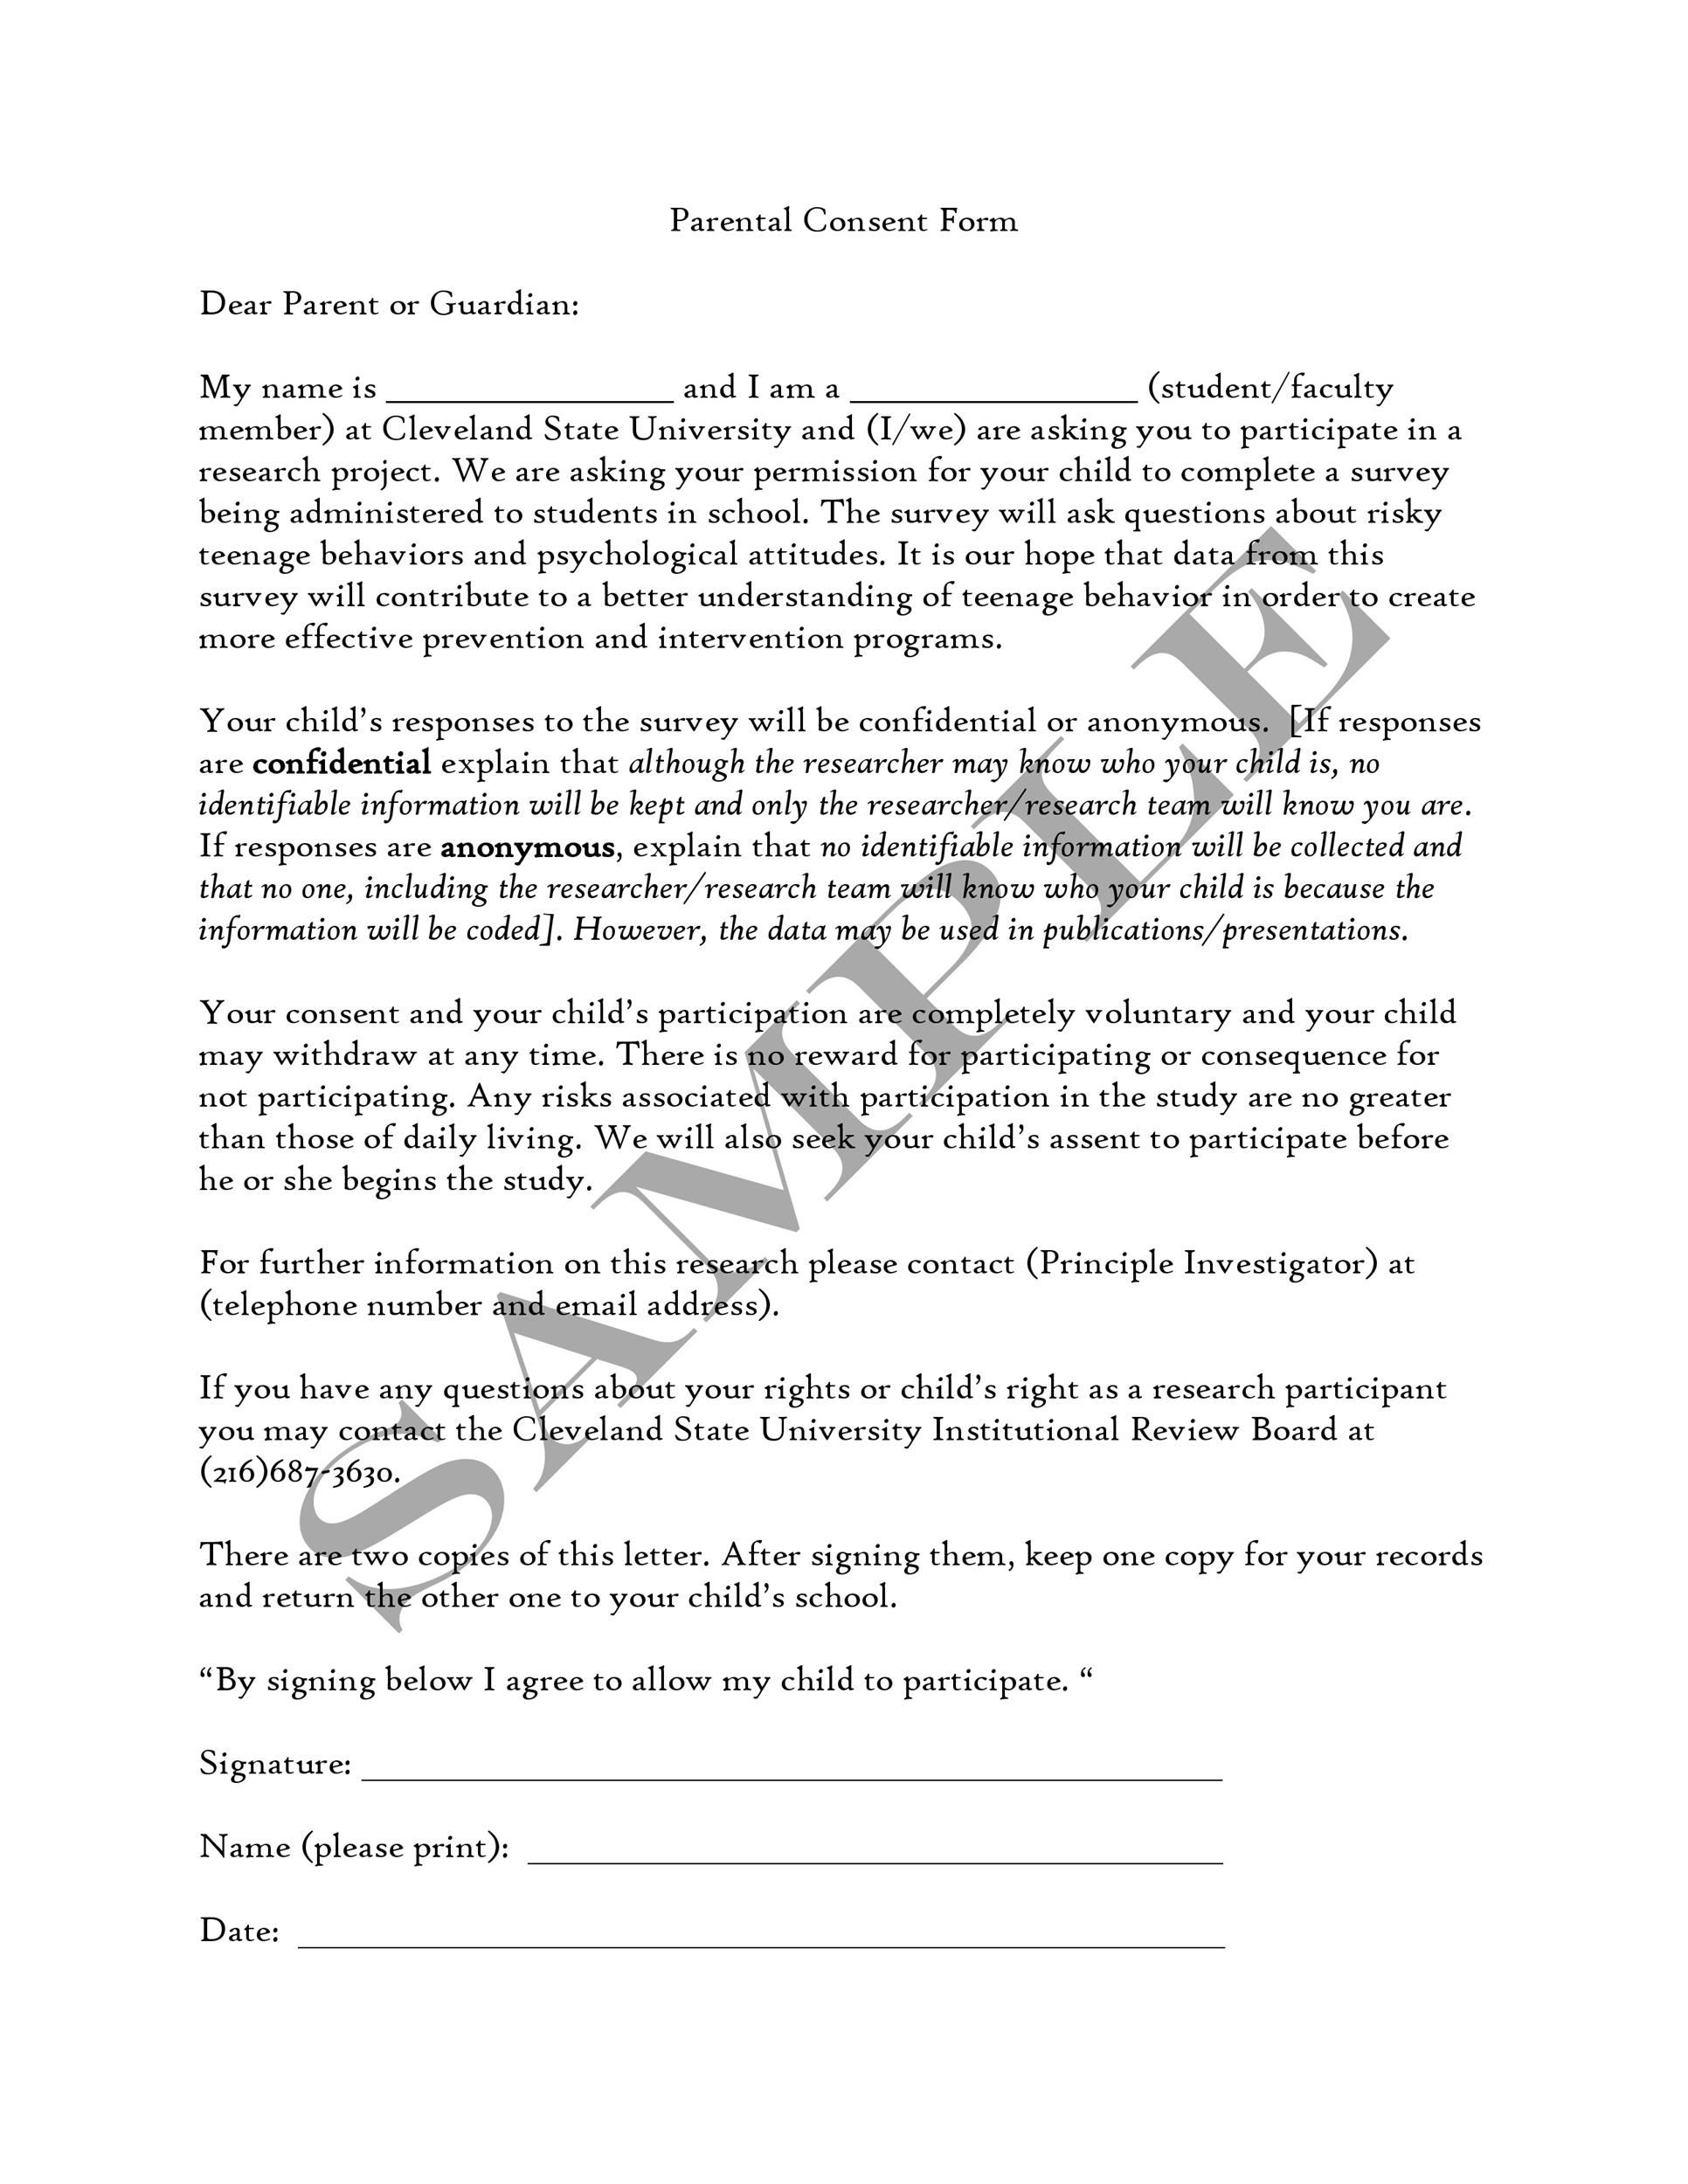 Free parental consent form template 32